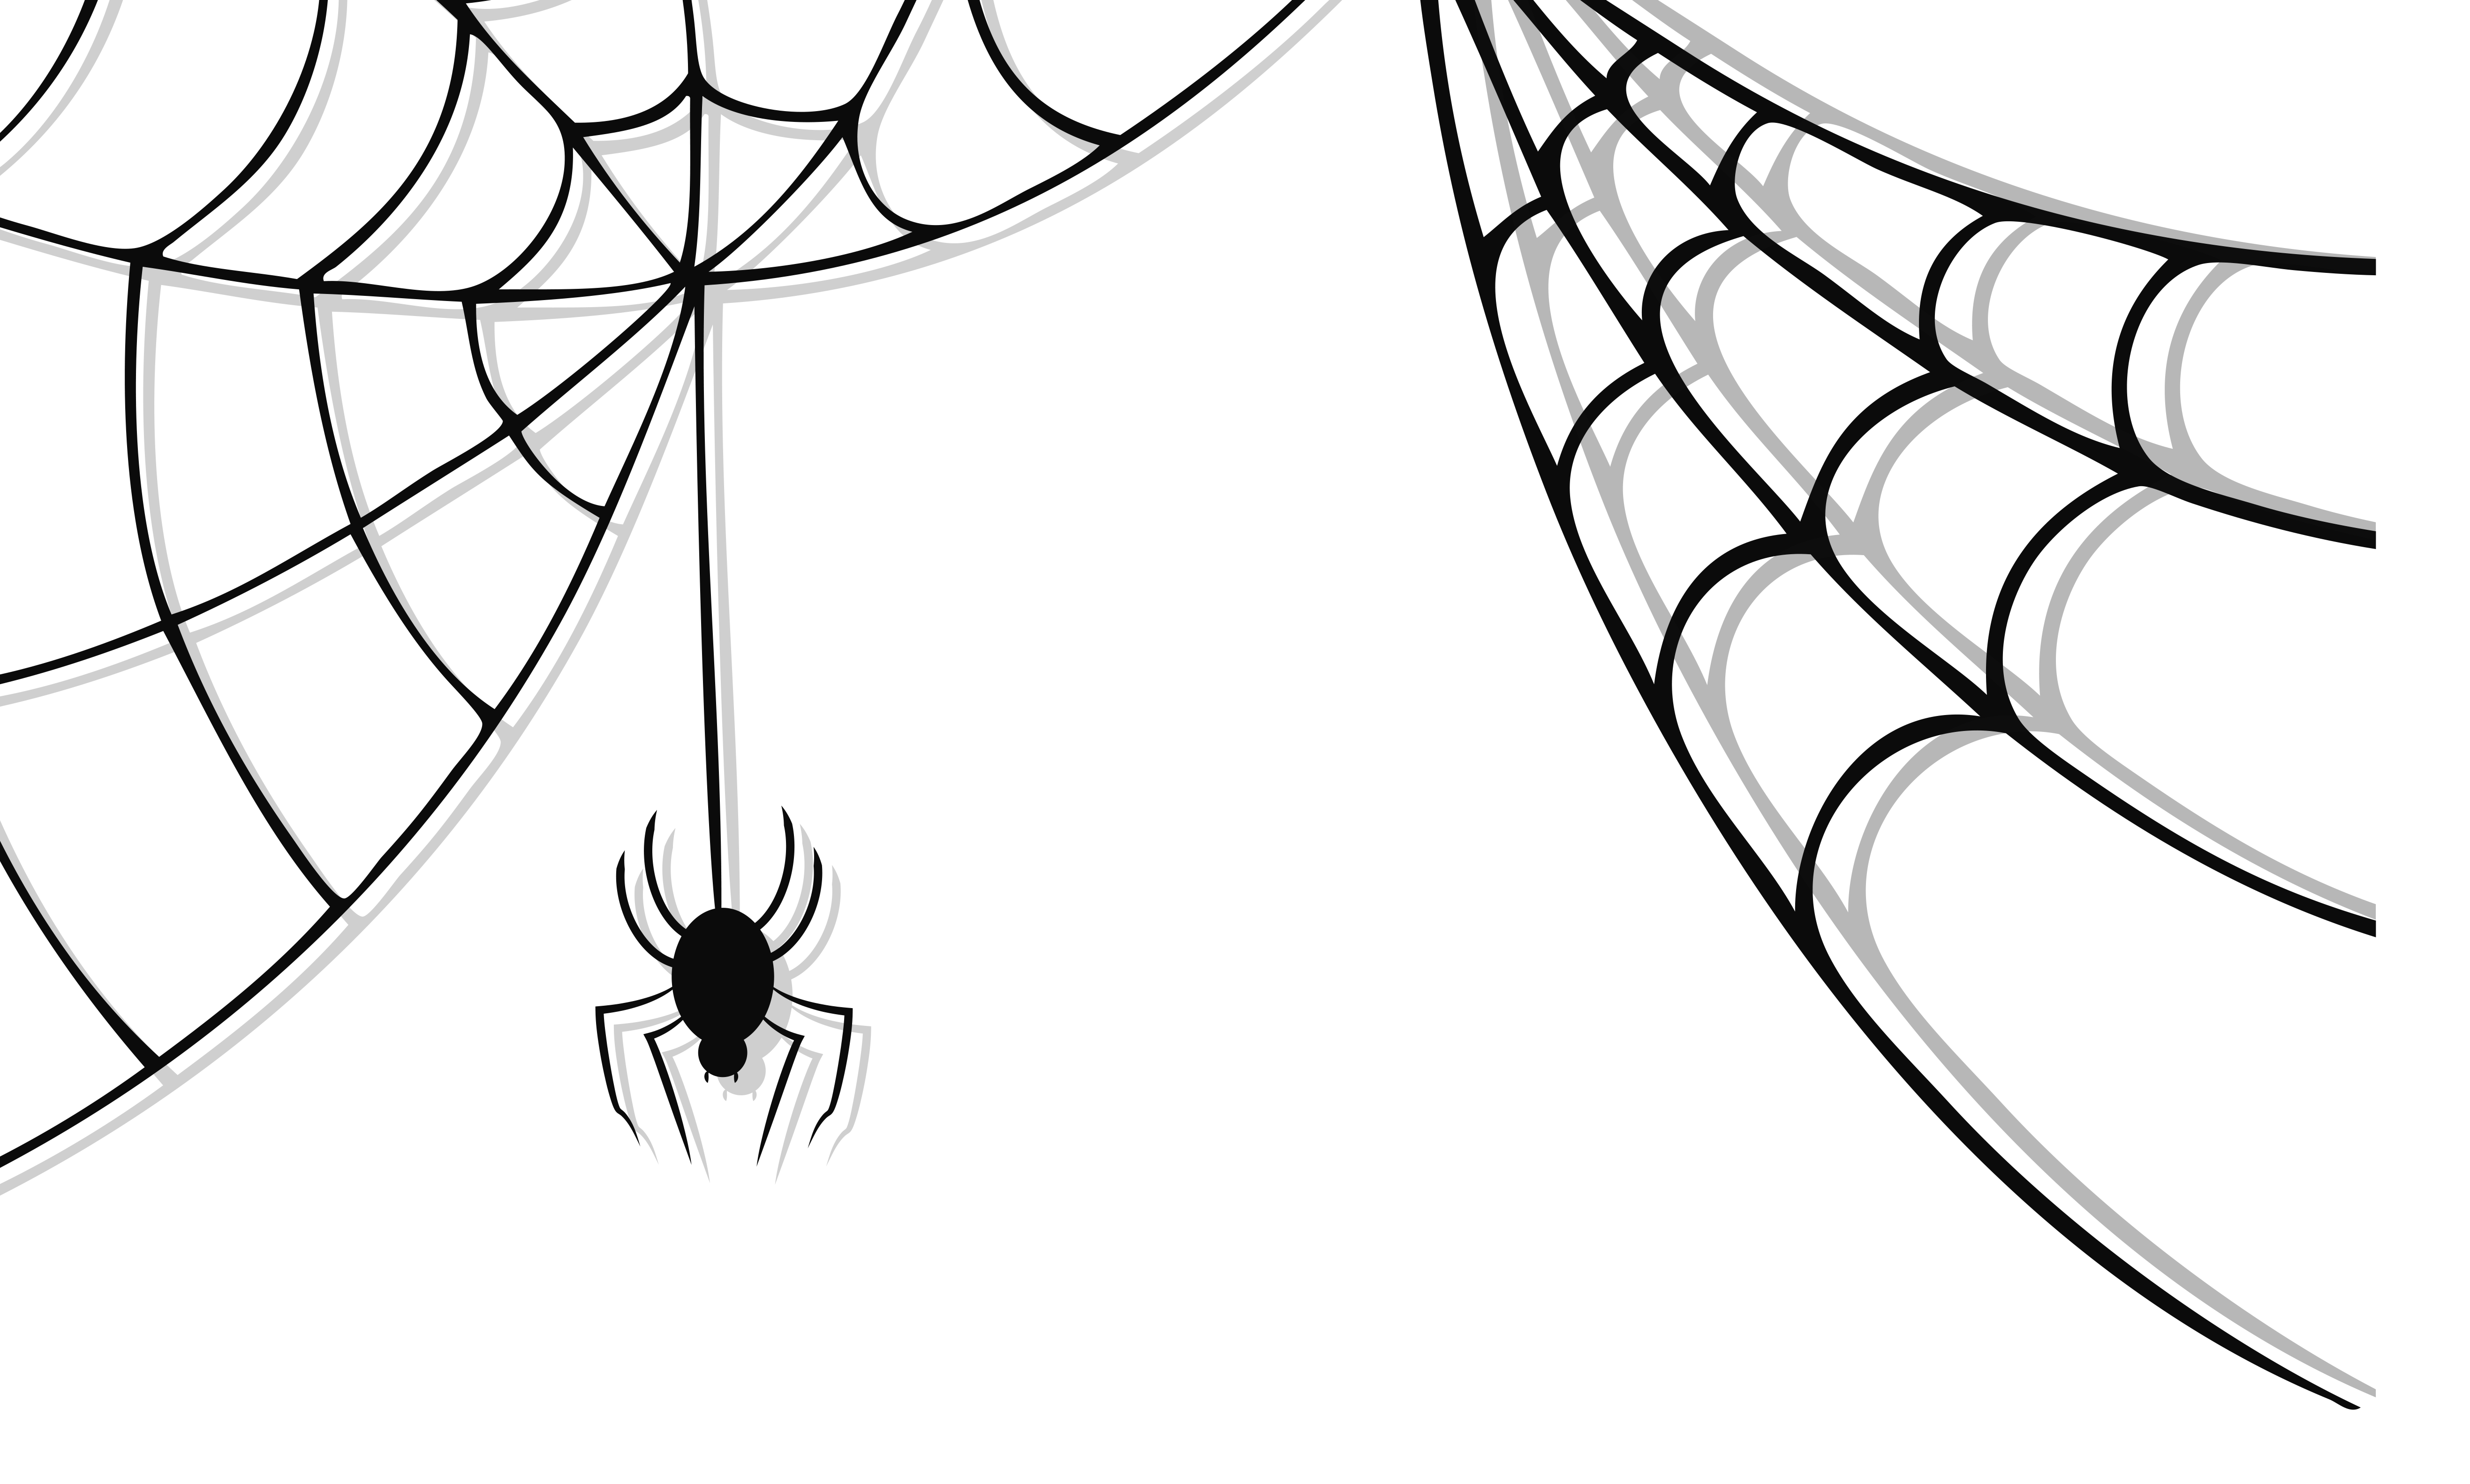 Haunted spider and web. Spiderweb clipart wed clip art free stock